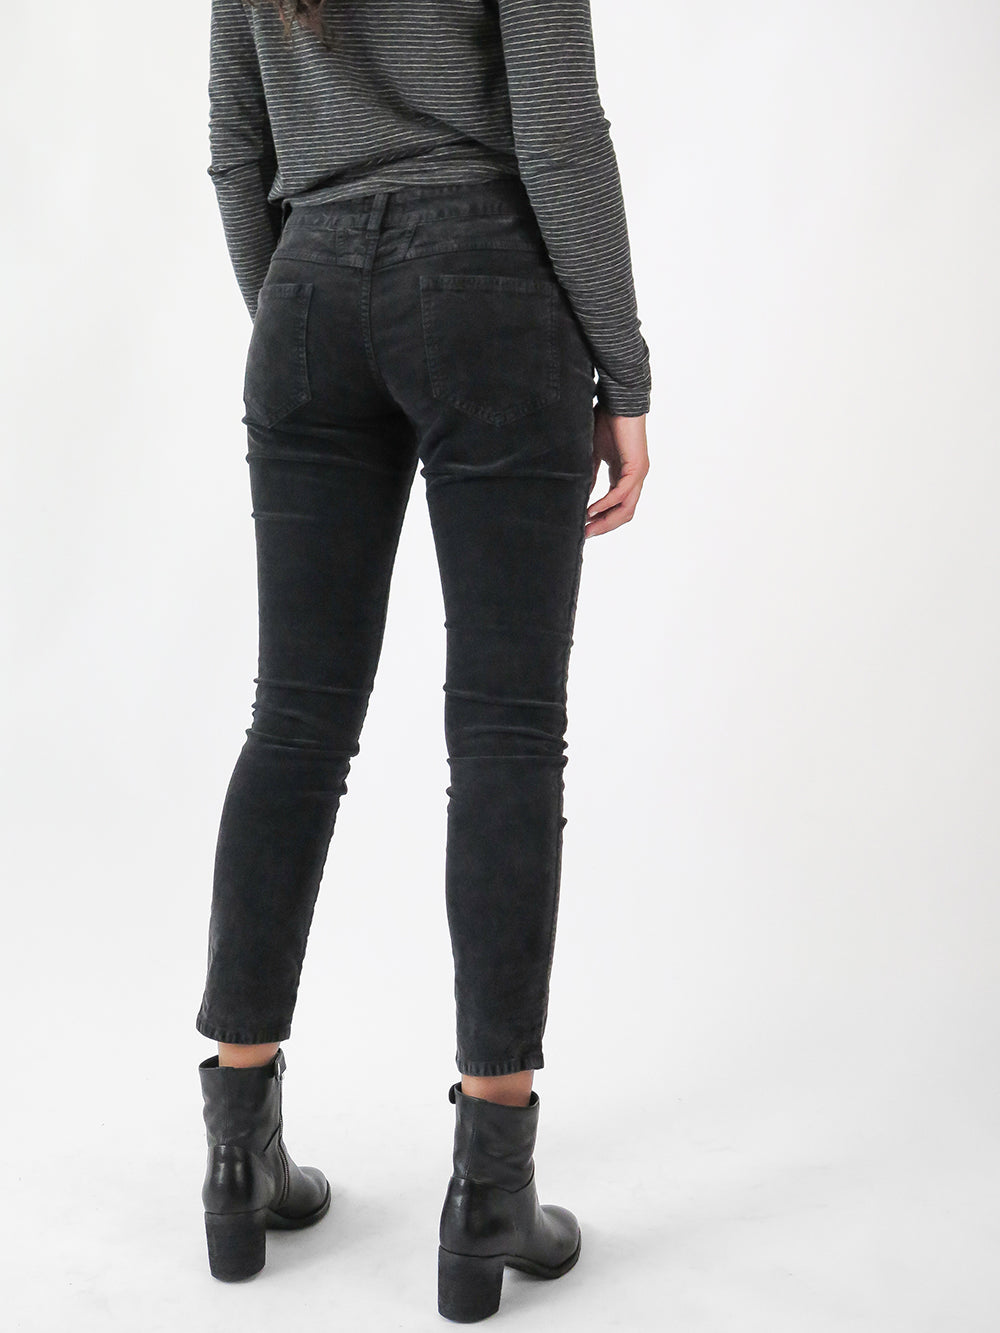 closed pedal-x pant in washed black